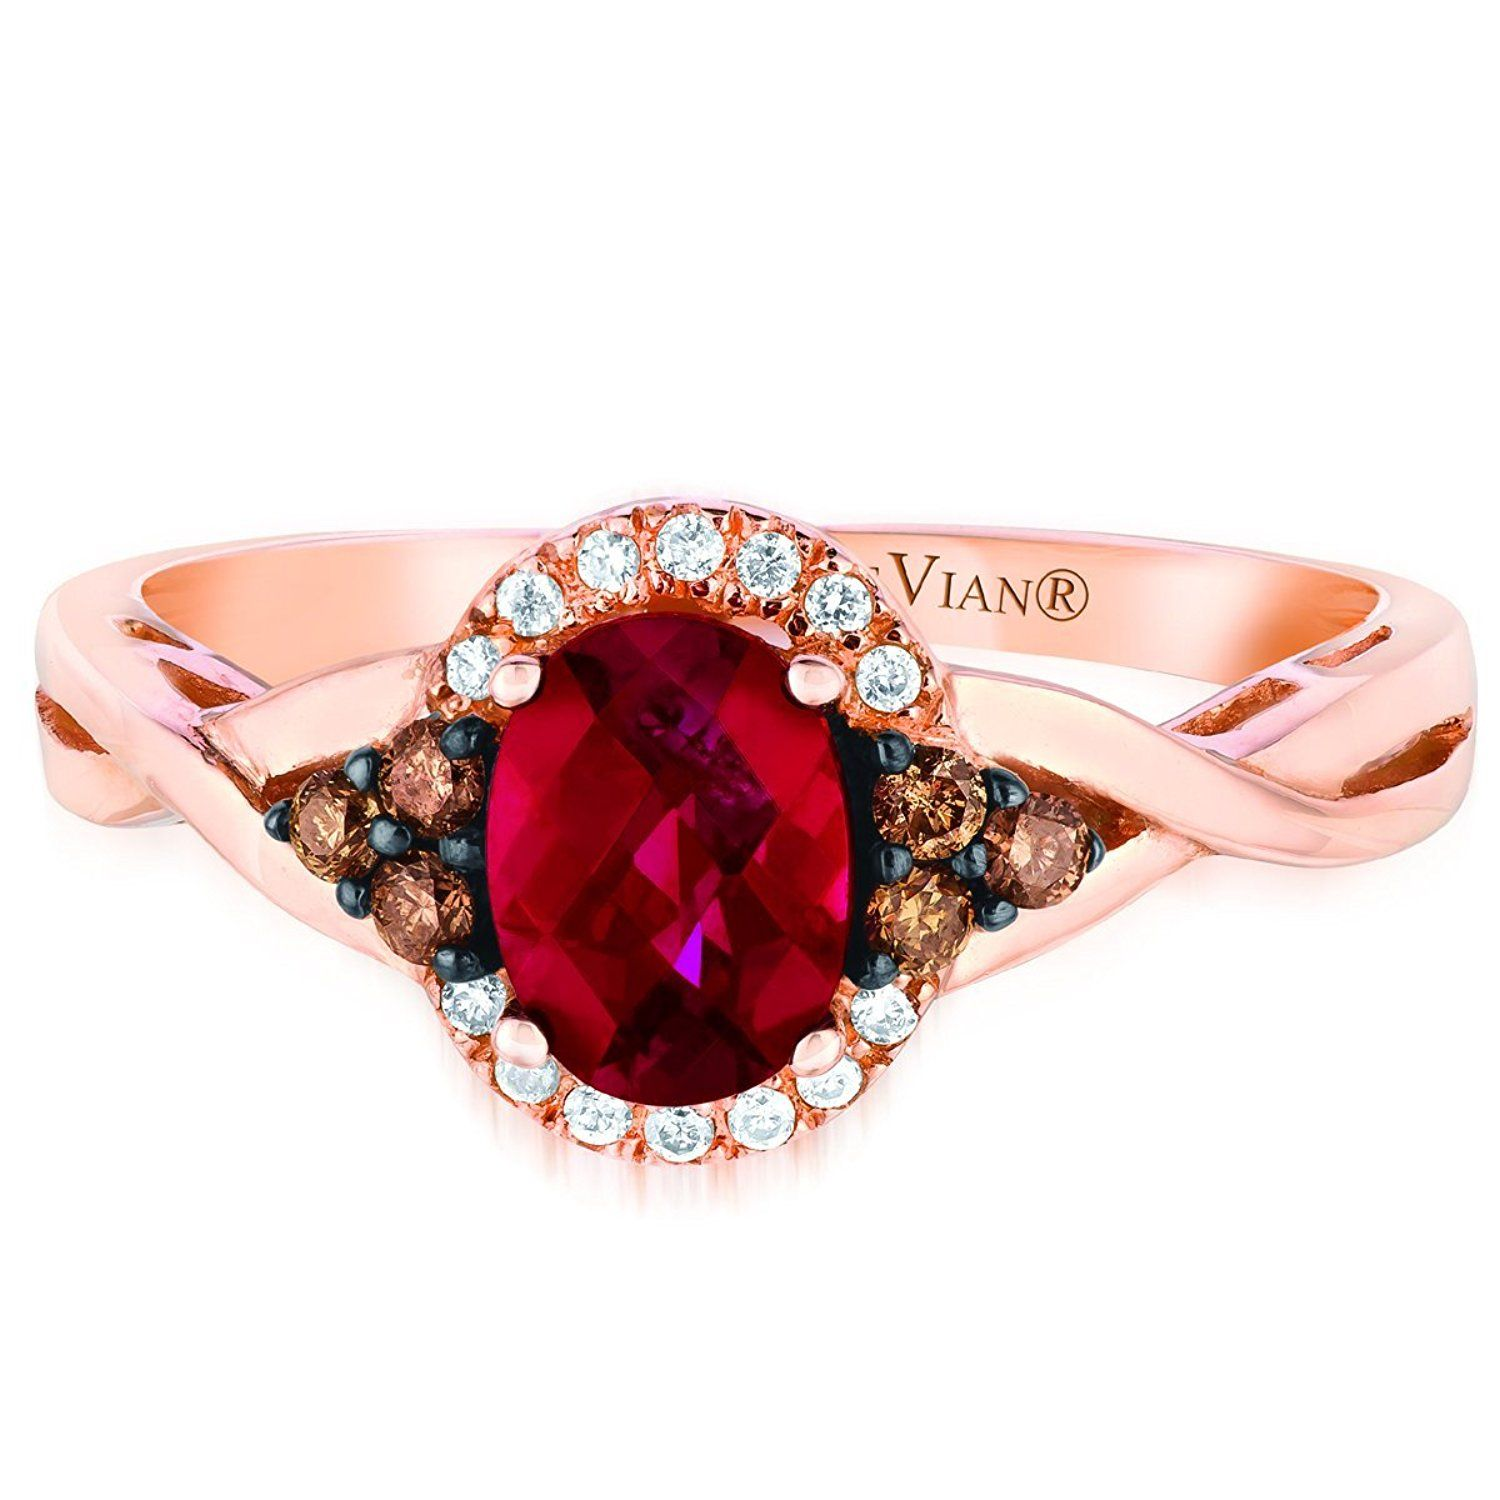 rings tw vanilla natural rose white ring with garnet rhodolite strawberry gold and diamonds raspberry chocolate le engagement vian in